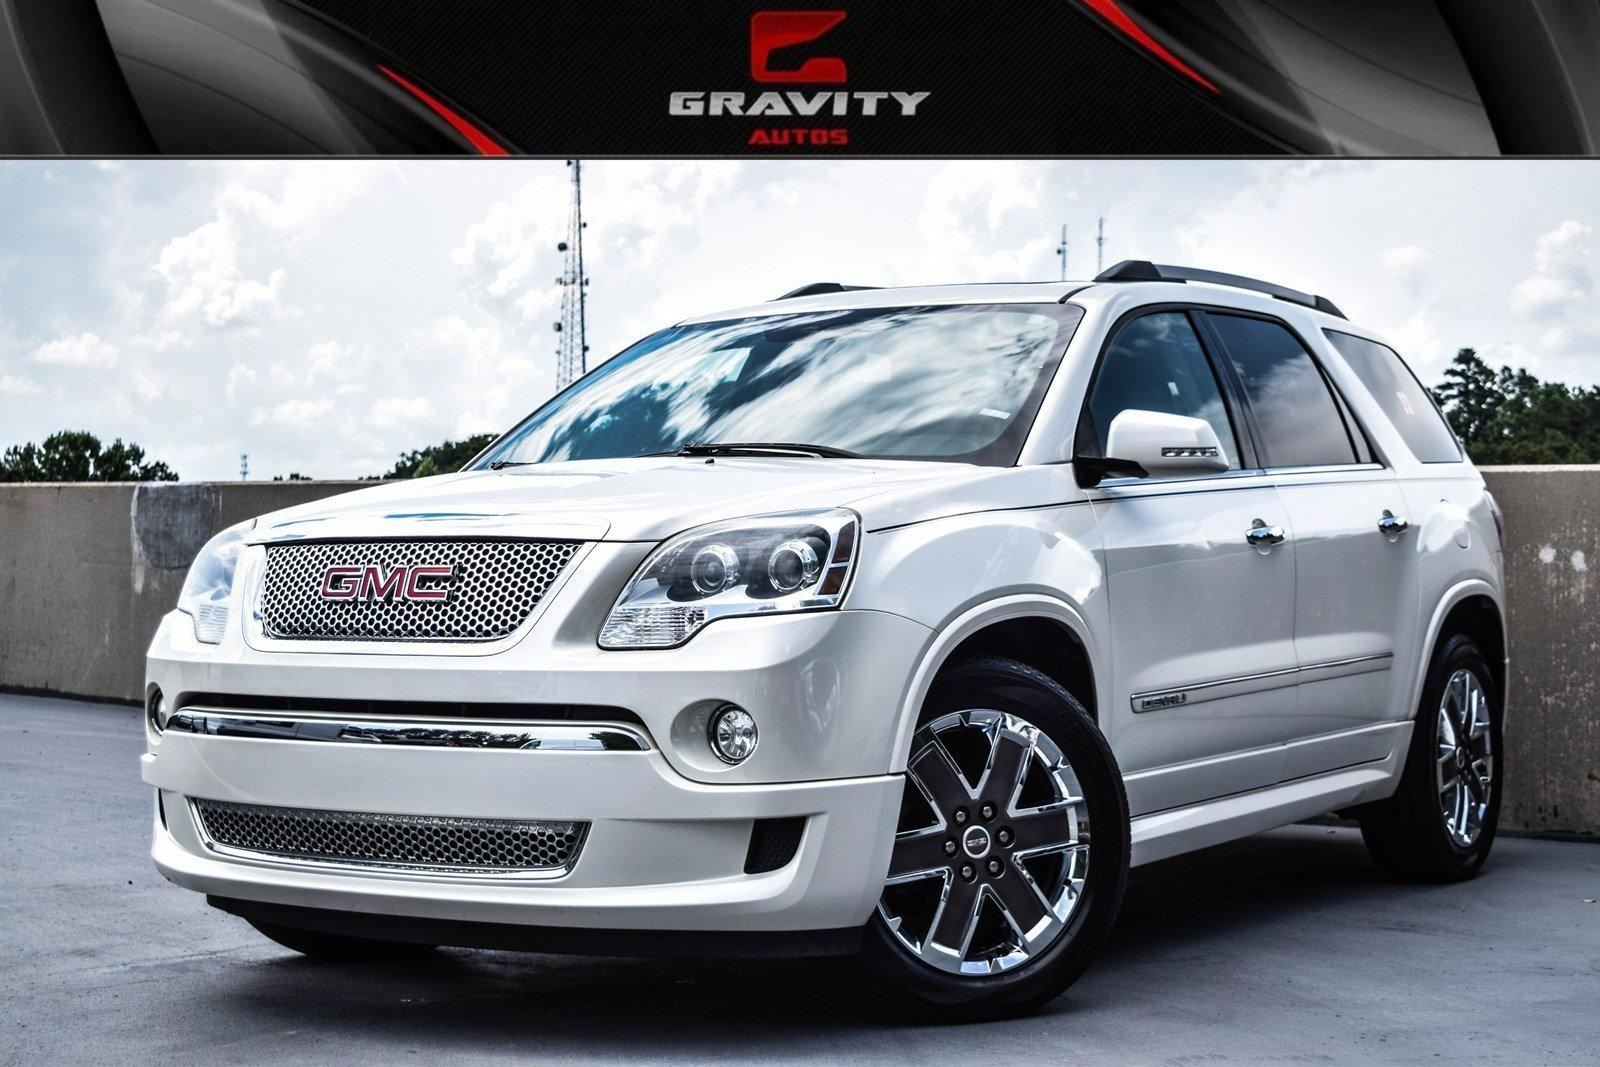 2012 GMC Acadia Denali Stock # 257838 for sale near Sandy Springs, GA | GA GMC Dealer